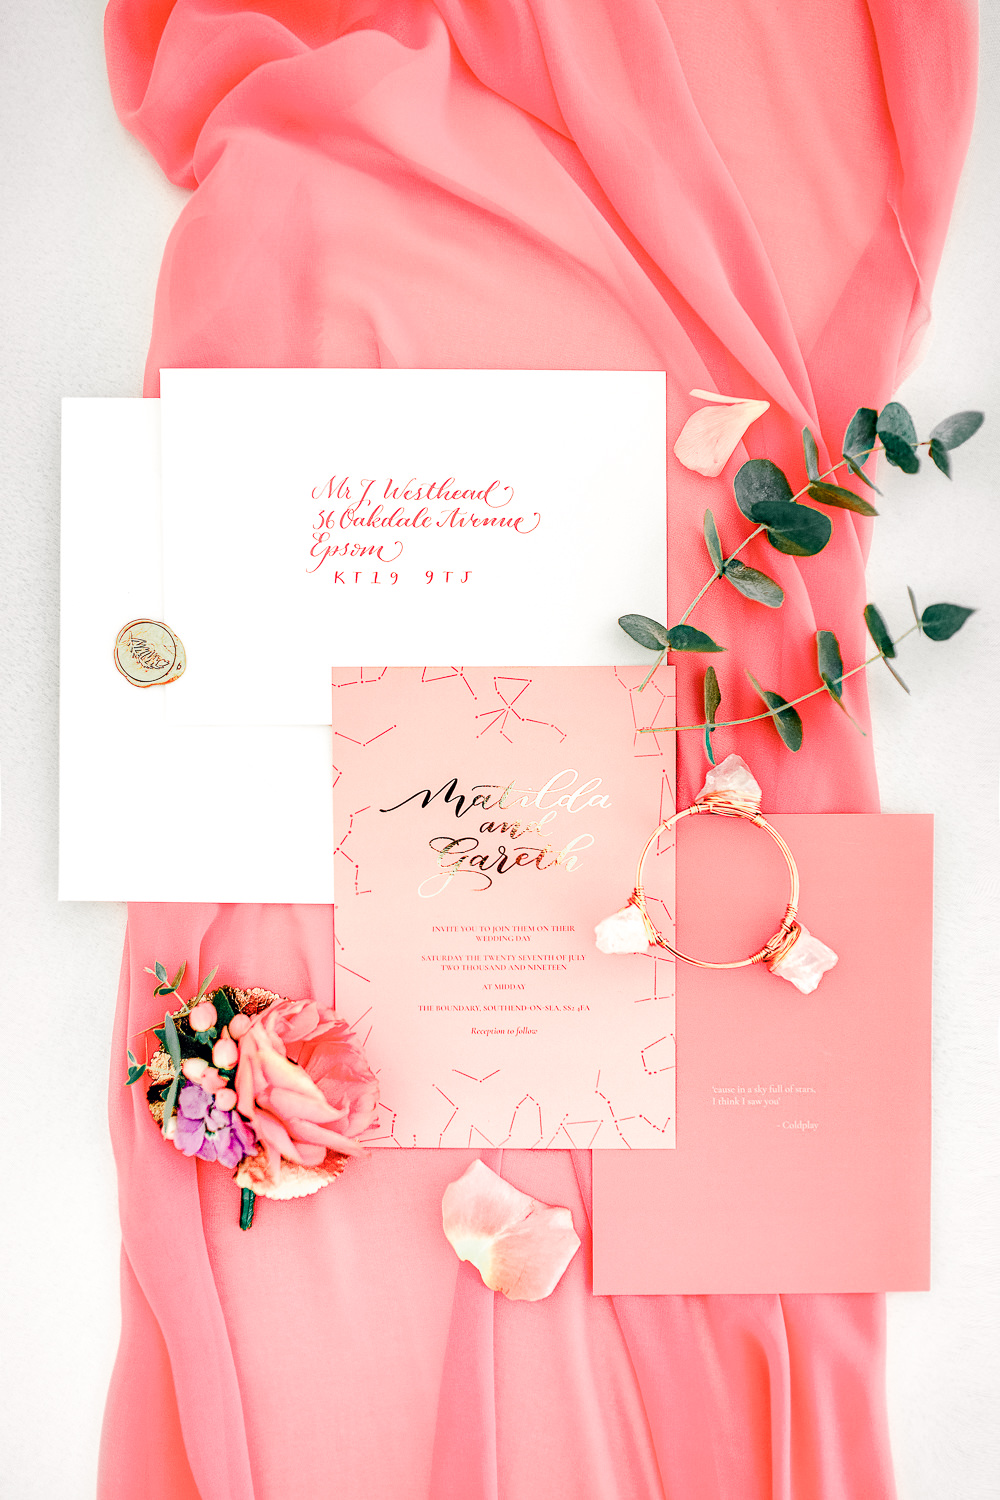 Stationery Invite Invitations Flat Lay Gold Calligraphy Coral Peach Wedding Ideas Courtney Dee Photography